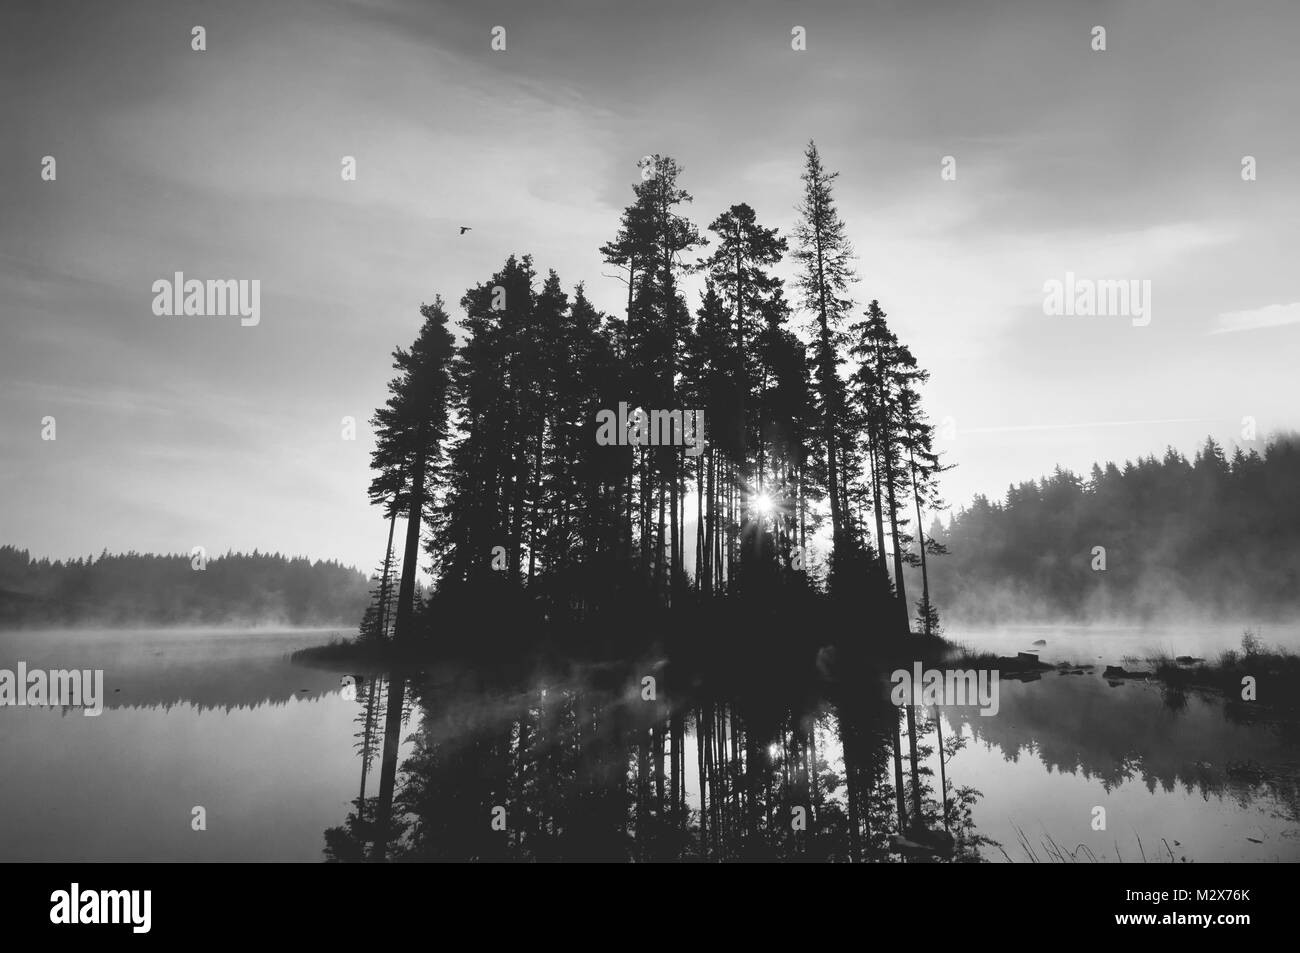 Beautiful reflections of lake and small island  in the early morning mist, in black and white. - Stock Image